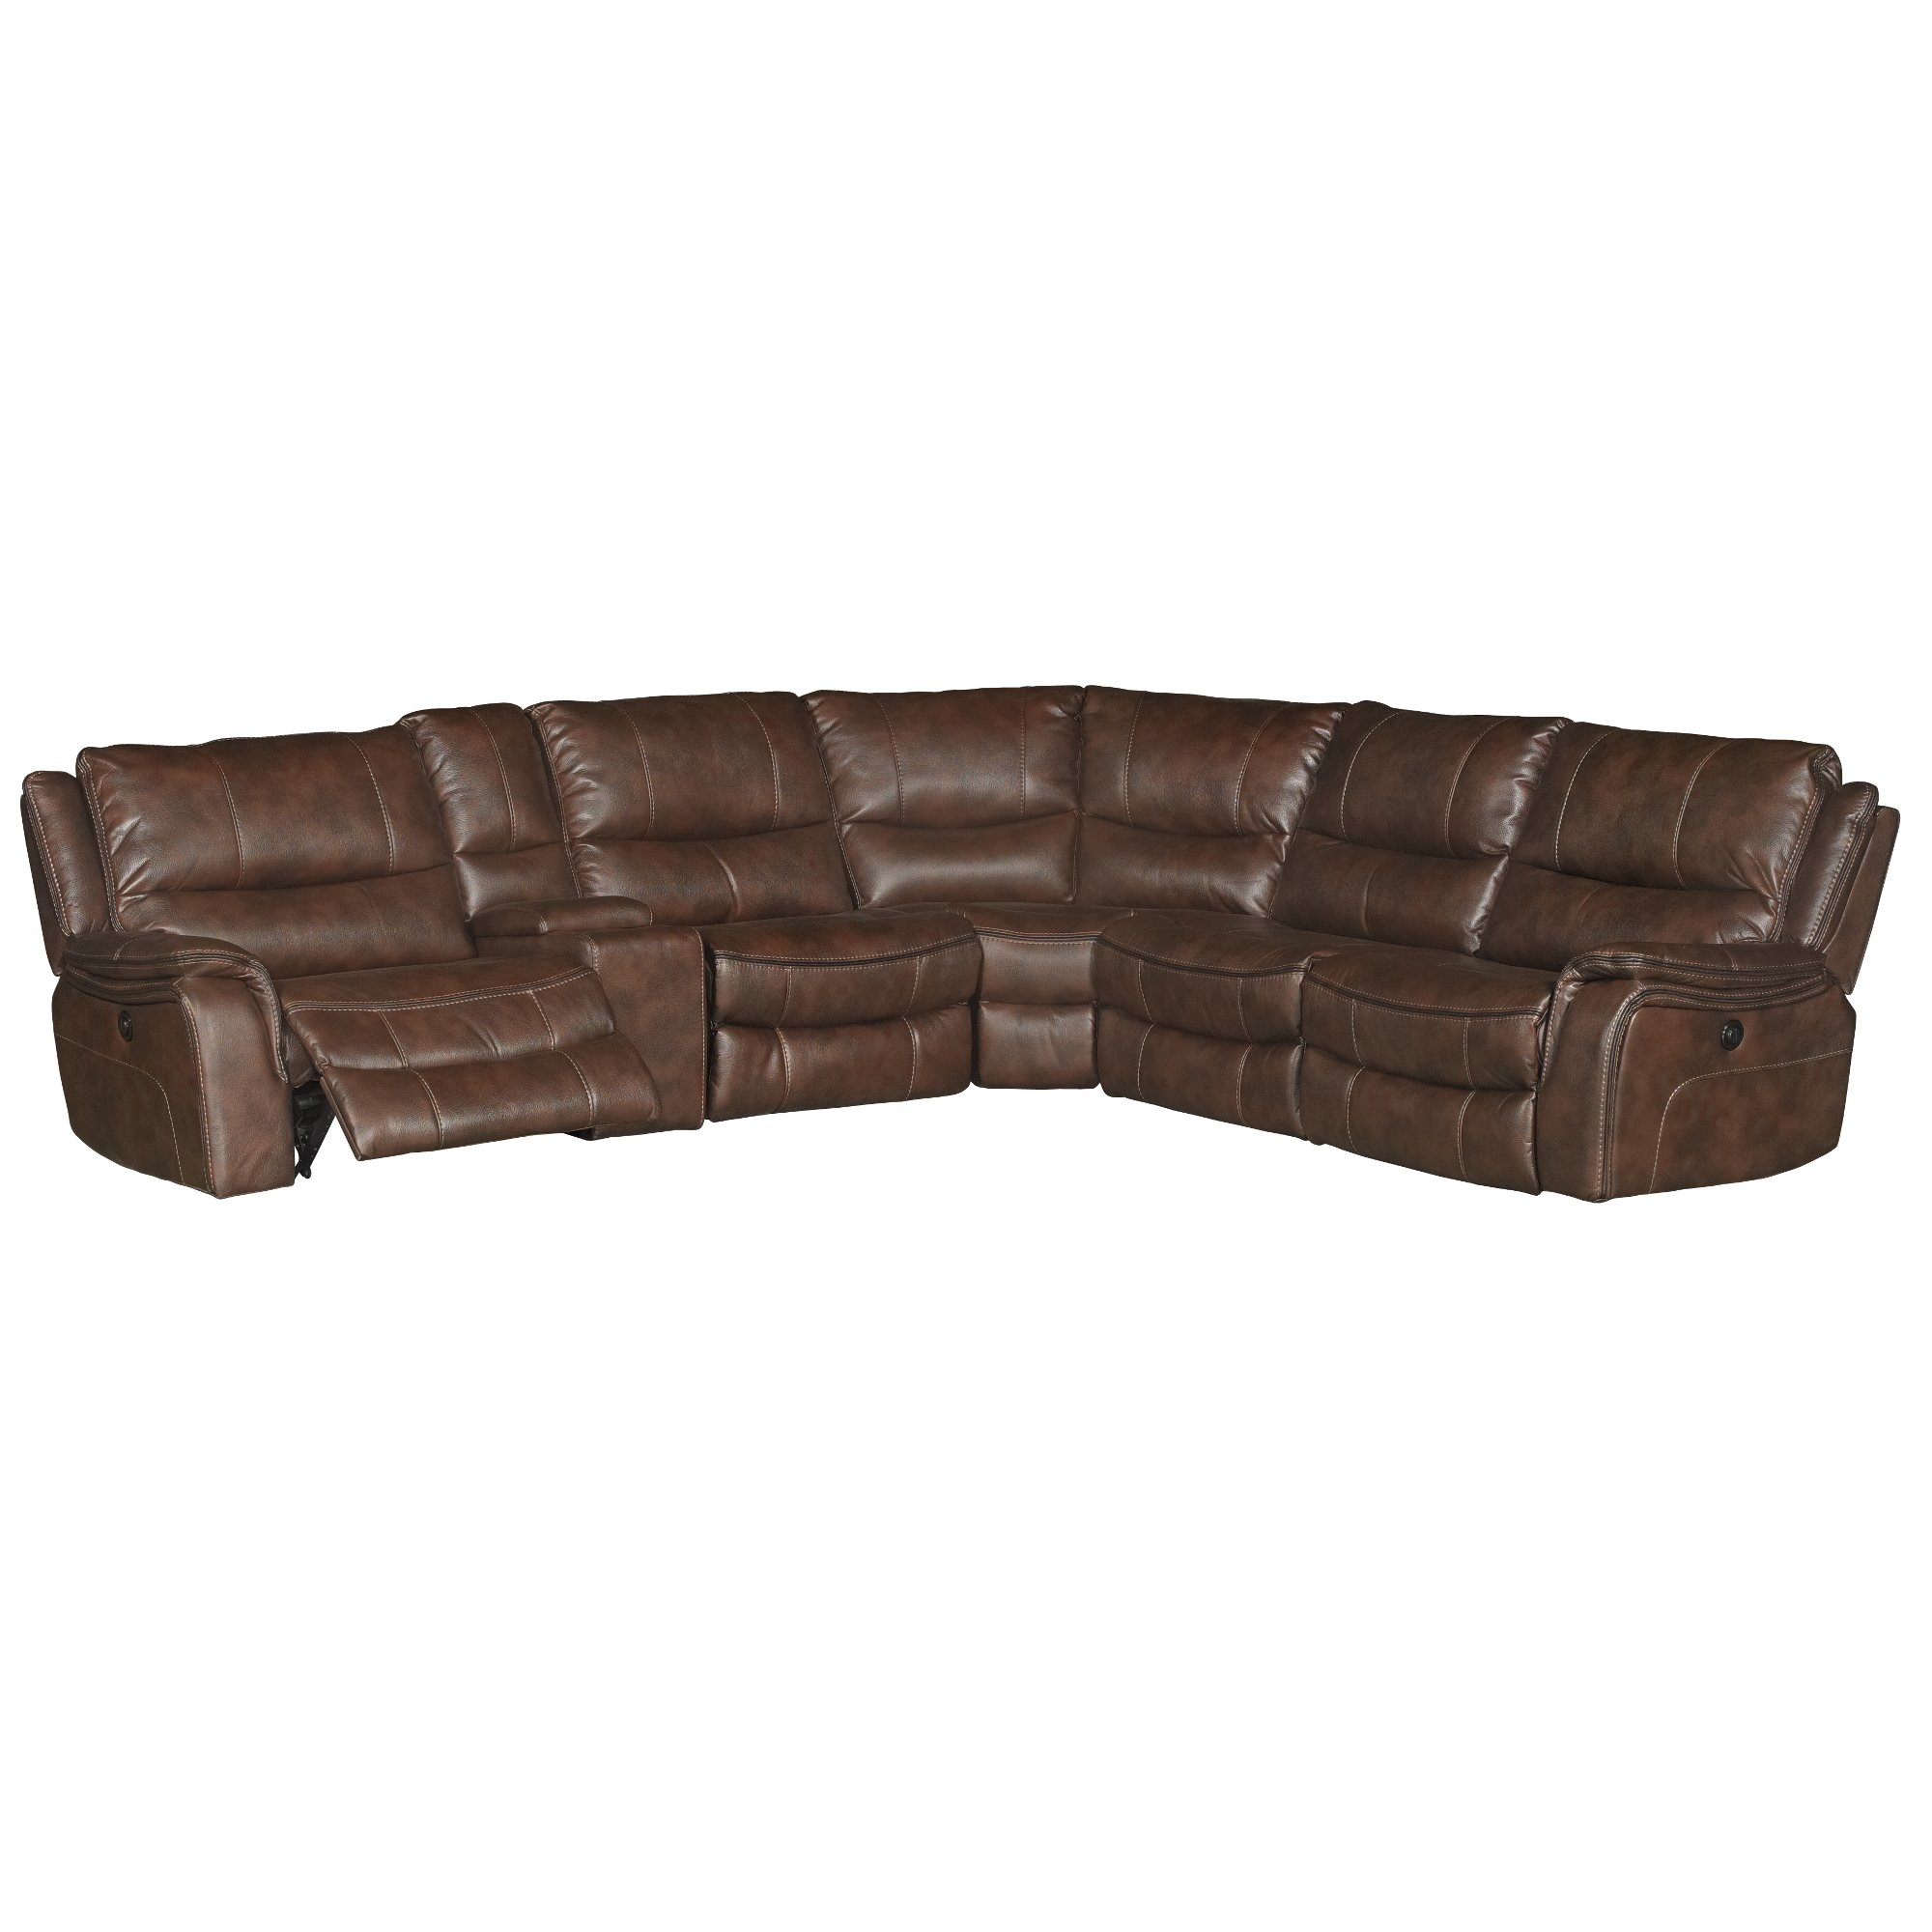 6 Piece Reclining Sectional Sofa | Baci Living Room Within Denali Charcoal Grey 6 Piece Reclining Sectionals With 2 Power Headrests (Image 4 of 25)